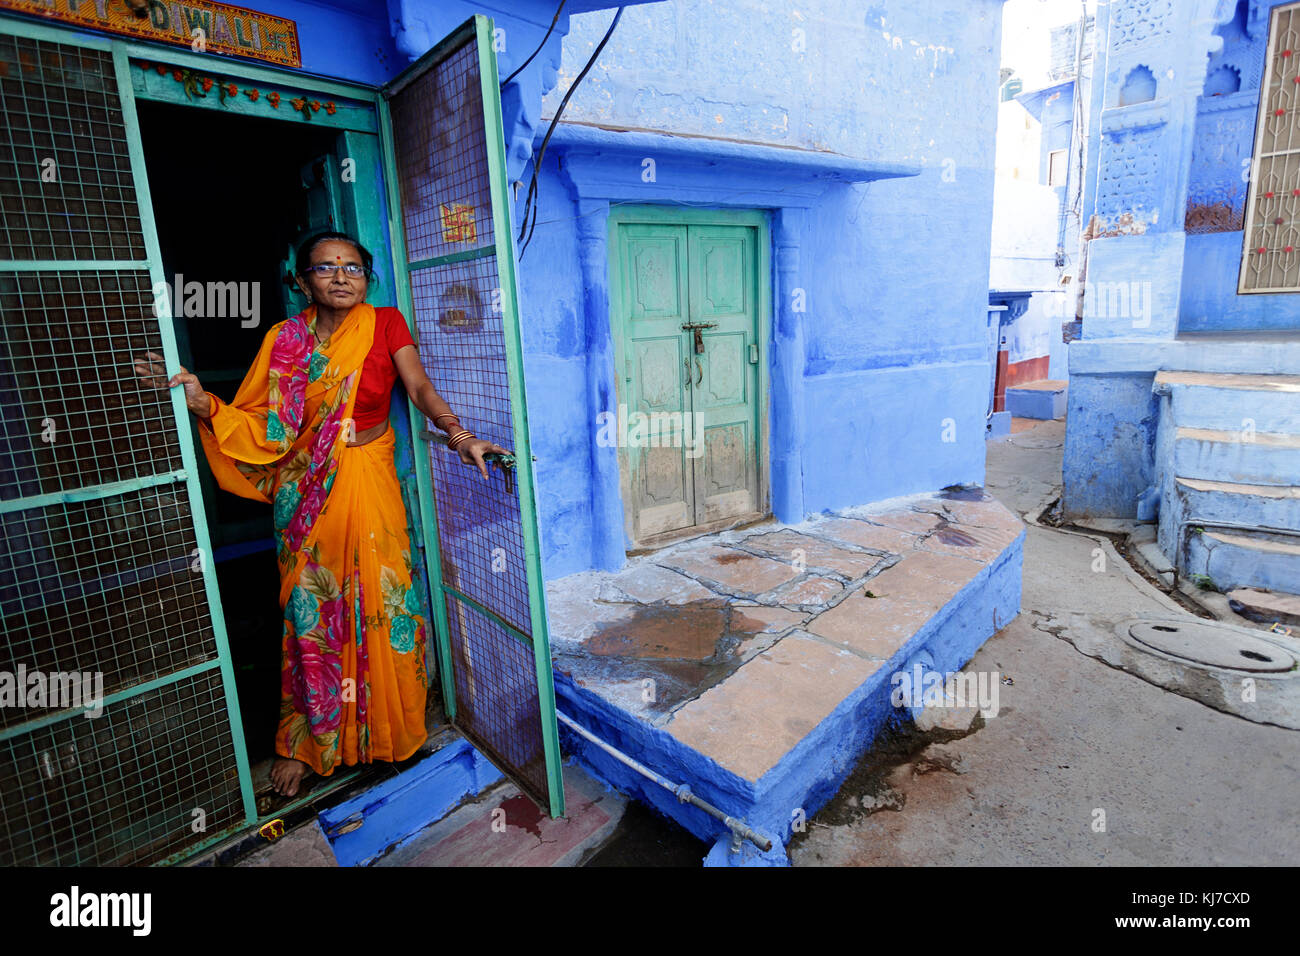 Old indian woman dressed in traditional clothes opening the green entrance door, Jodhpur, India. Stock Photo